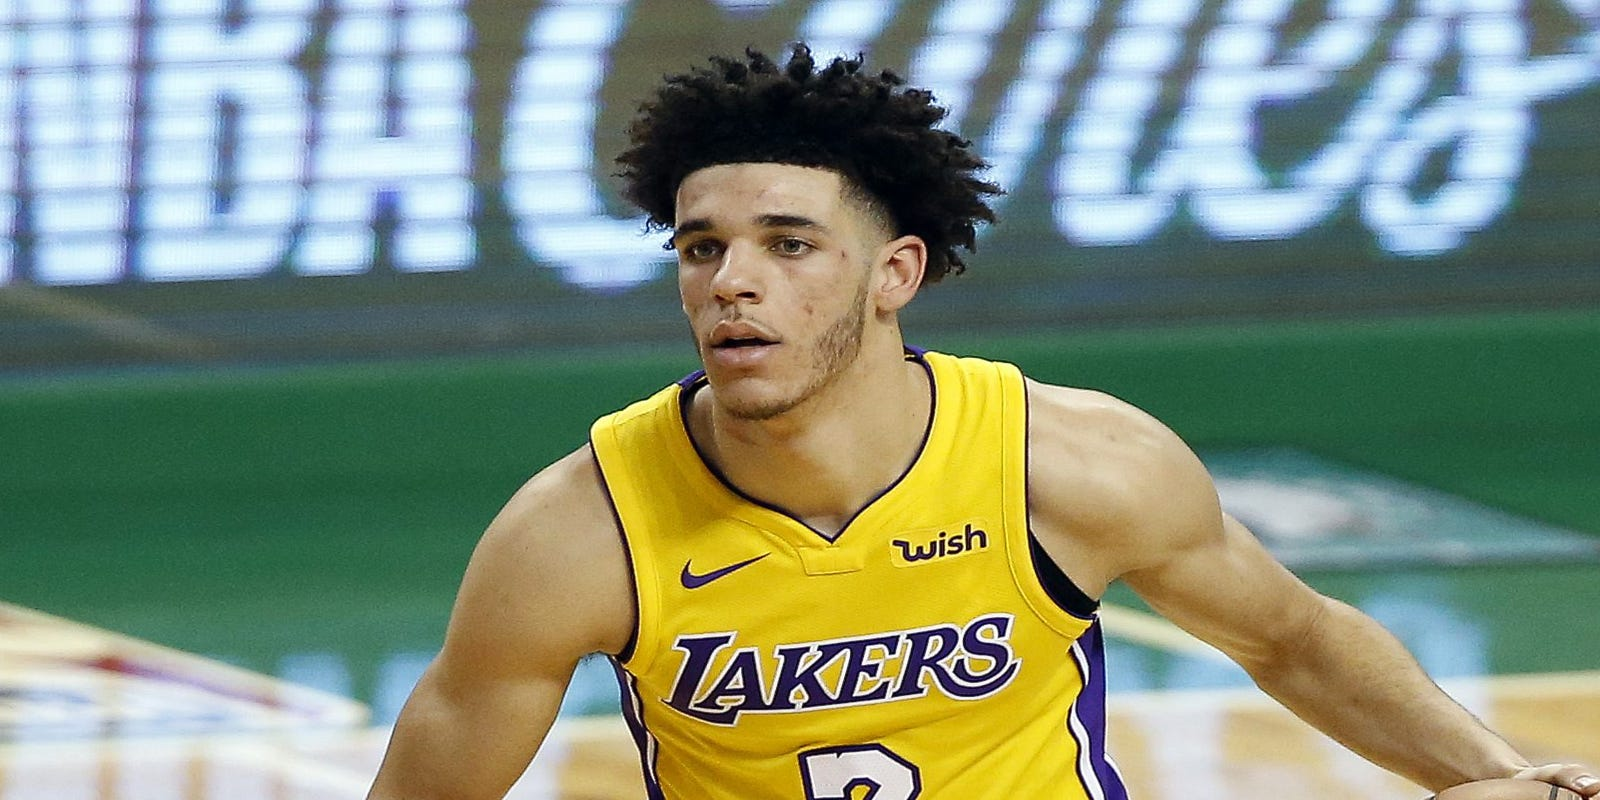 Lonzo Ball Got A Haircut And Twitter Made Jokes